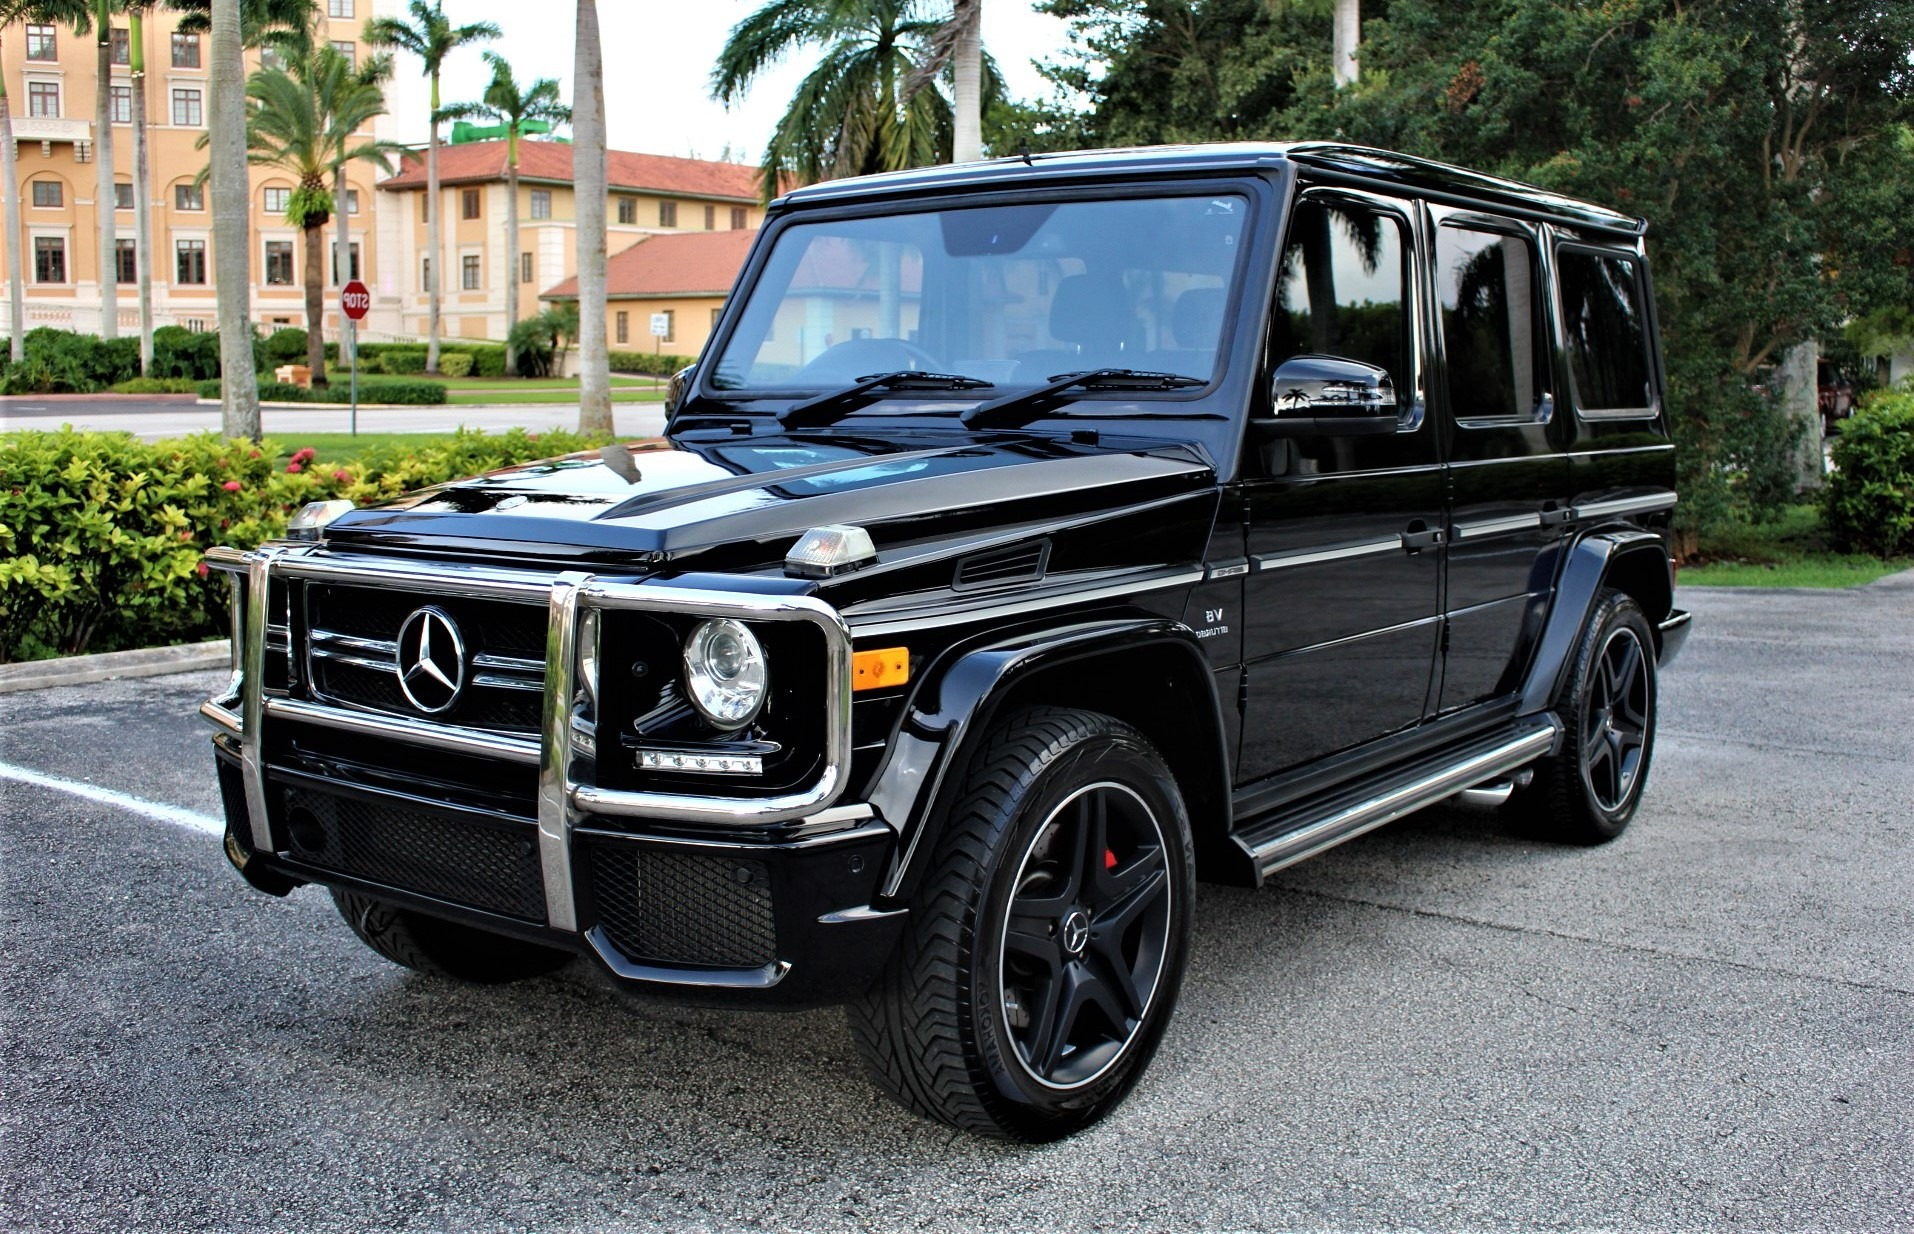 Used 2013 Mercedes-Benz G-Class G 63 AMG for sale Sold at The Gables Sports Cars in Miami FL 33146 3